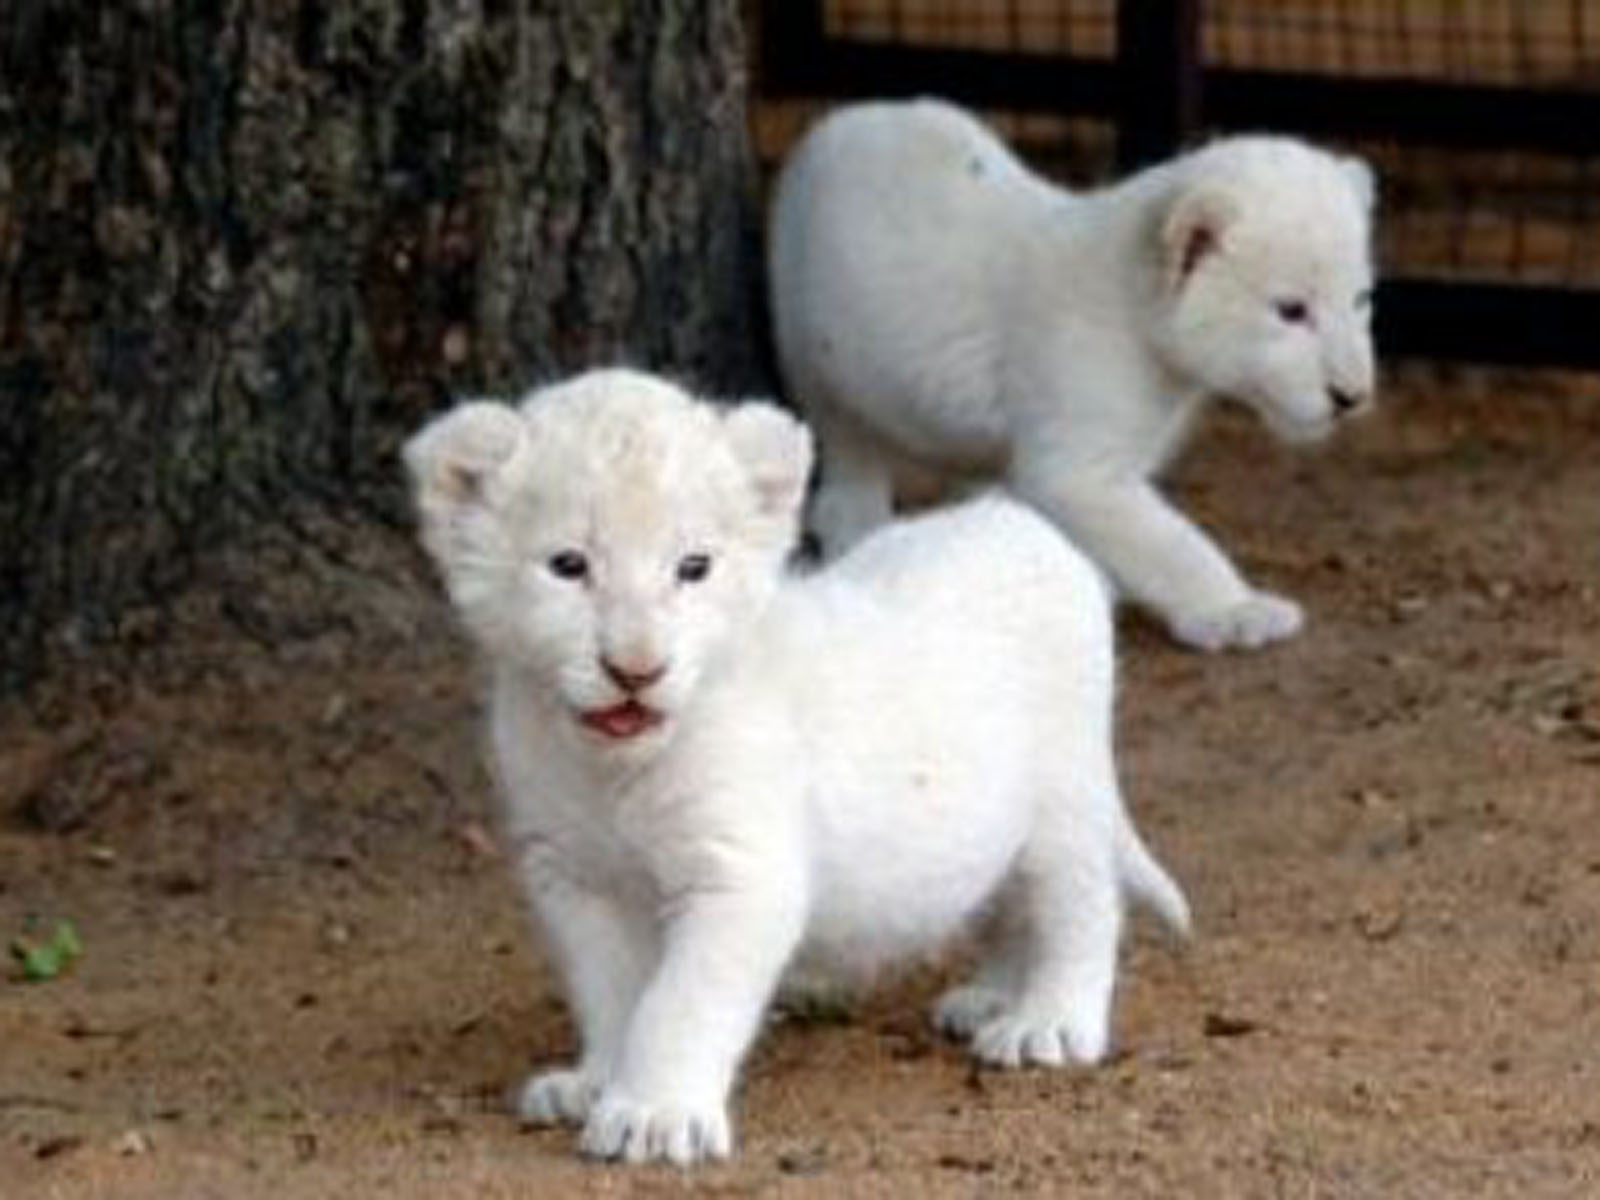 Baby White Lion Pictures - 2013 Wallpapers - photo#2